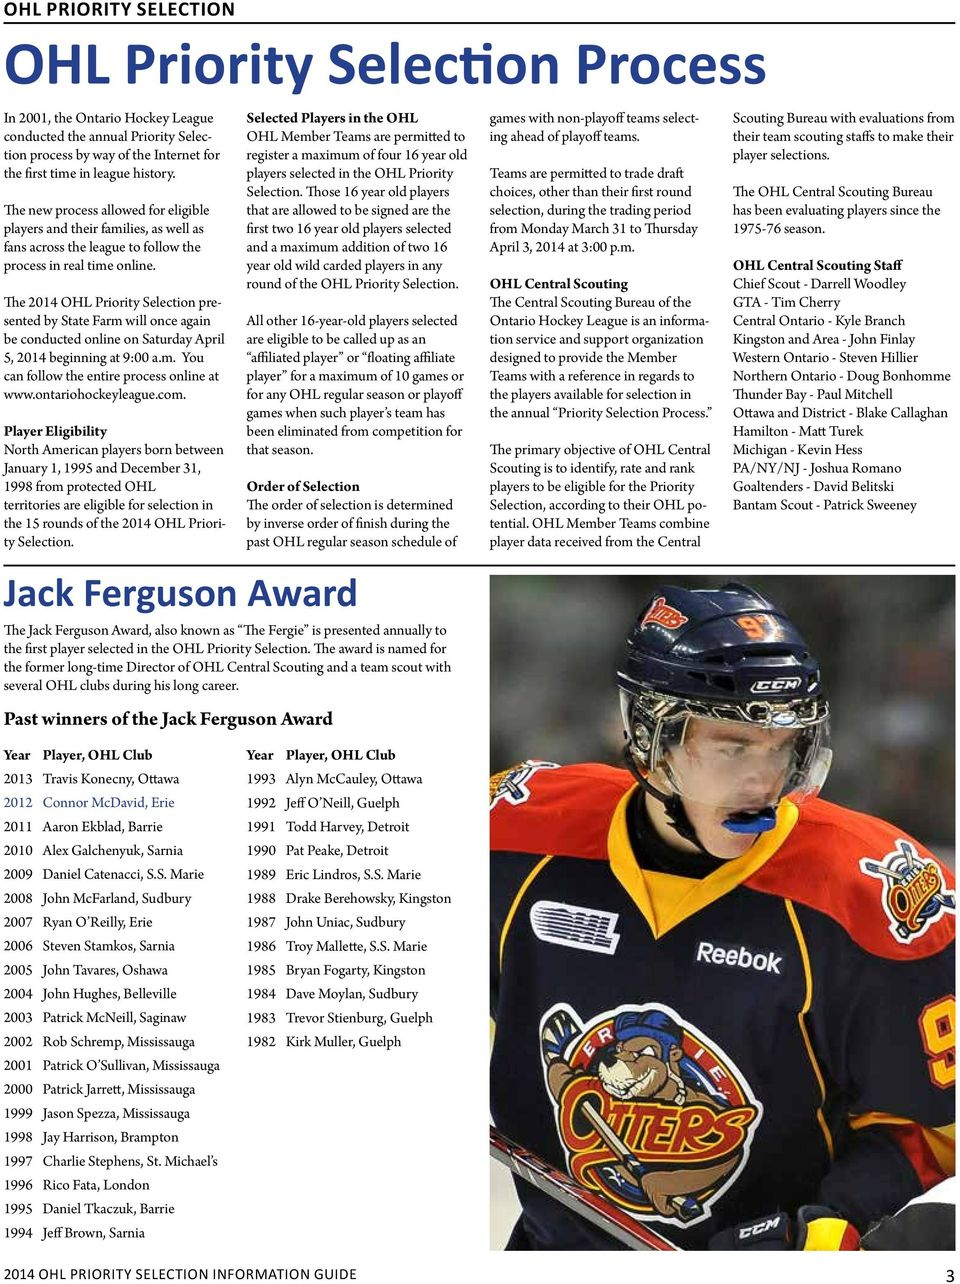 2014 OHL Priority Selection Information Guide - PDF